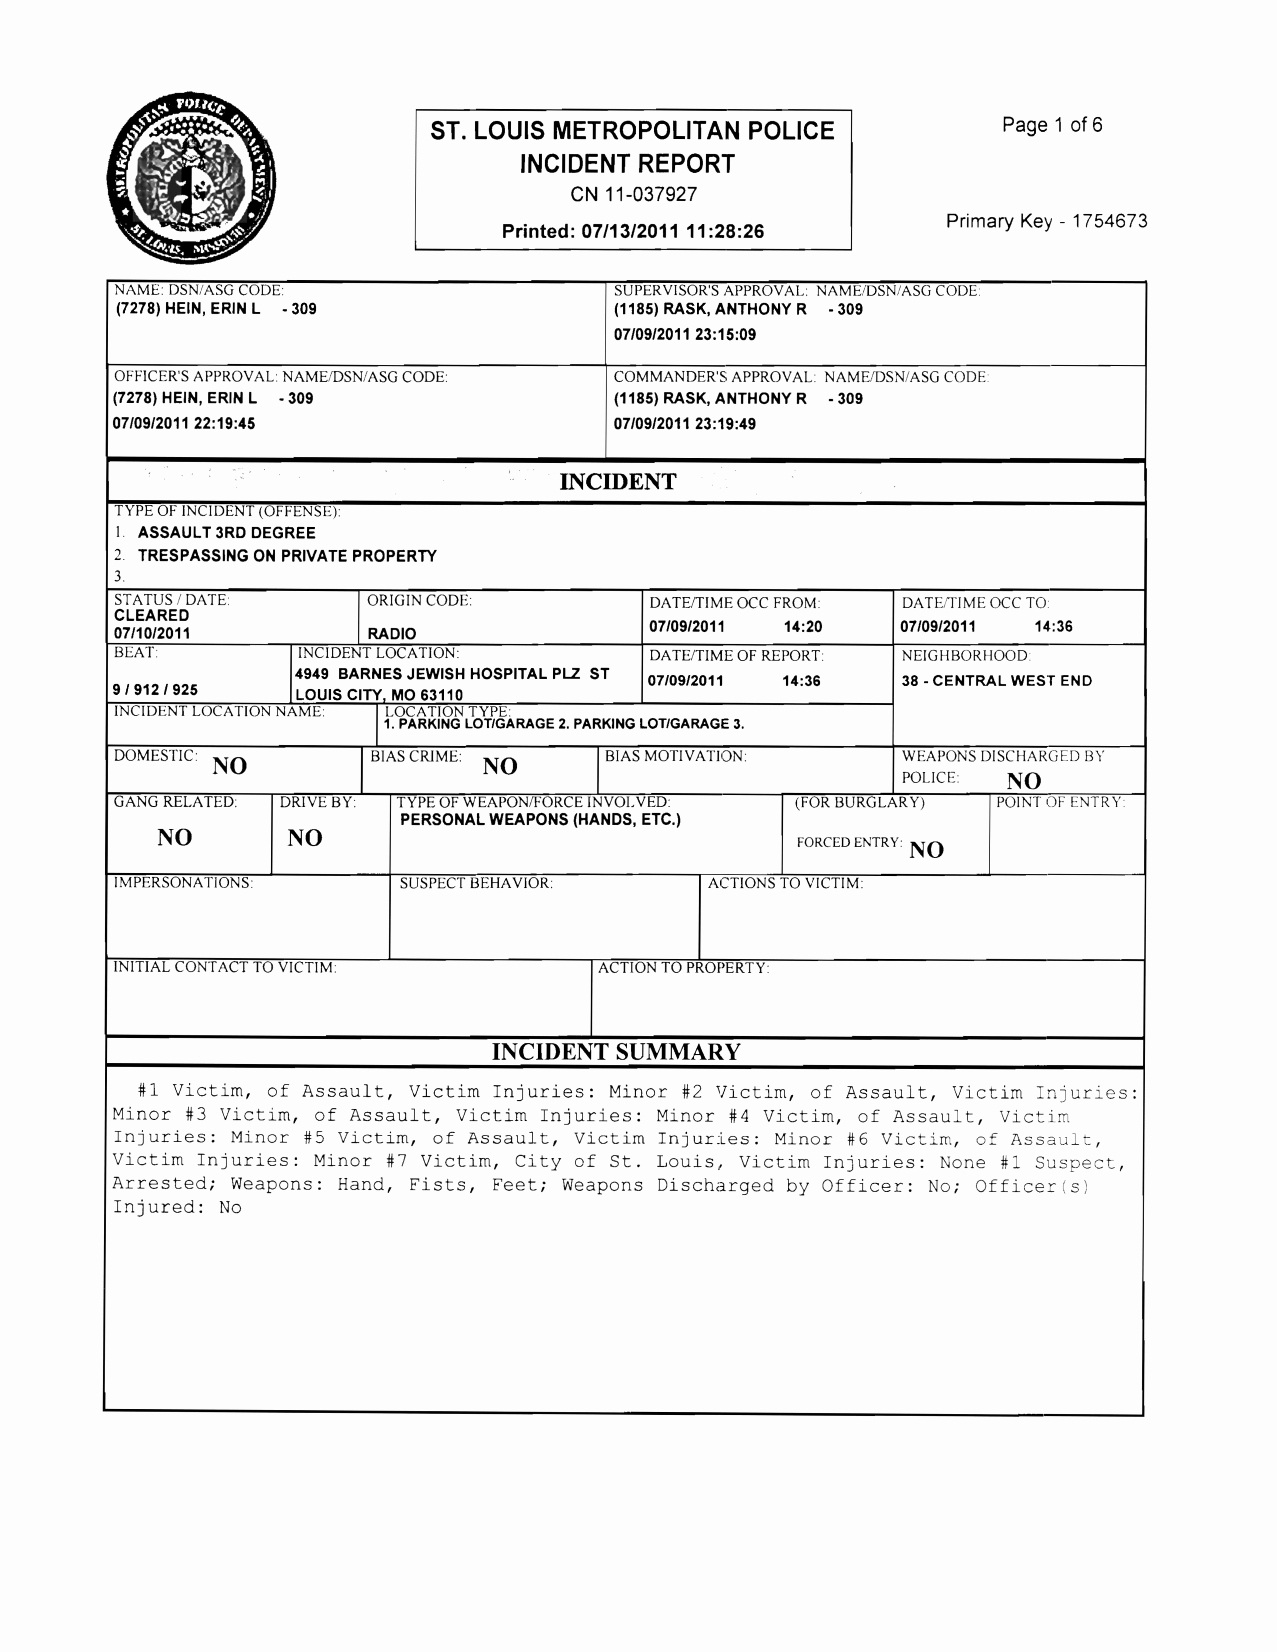 Homicide Police Report Template Lovely Best S Of Free Police Incident forms Printable